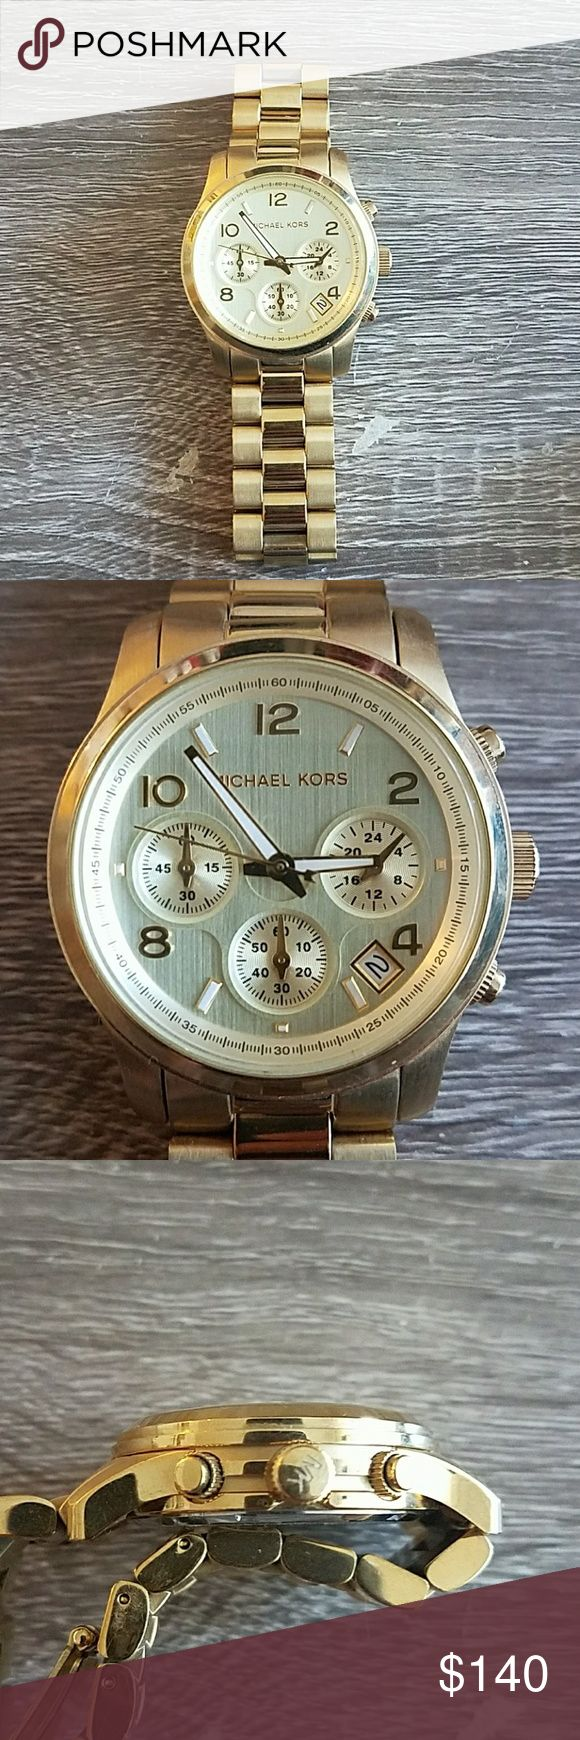 Michael Kors Mk 5055. Gold metal band. Worn a few times. No scratches on face. Battery needs to be replaced. Michael Kors Accessories Watches